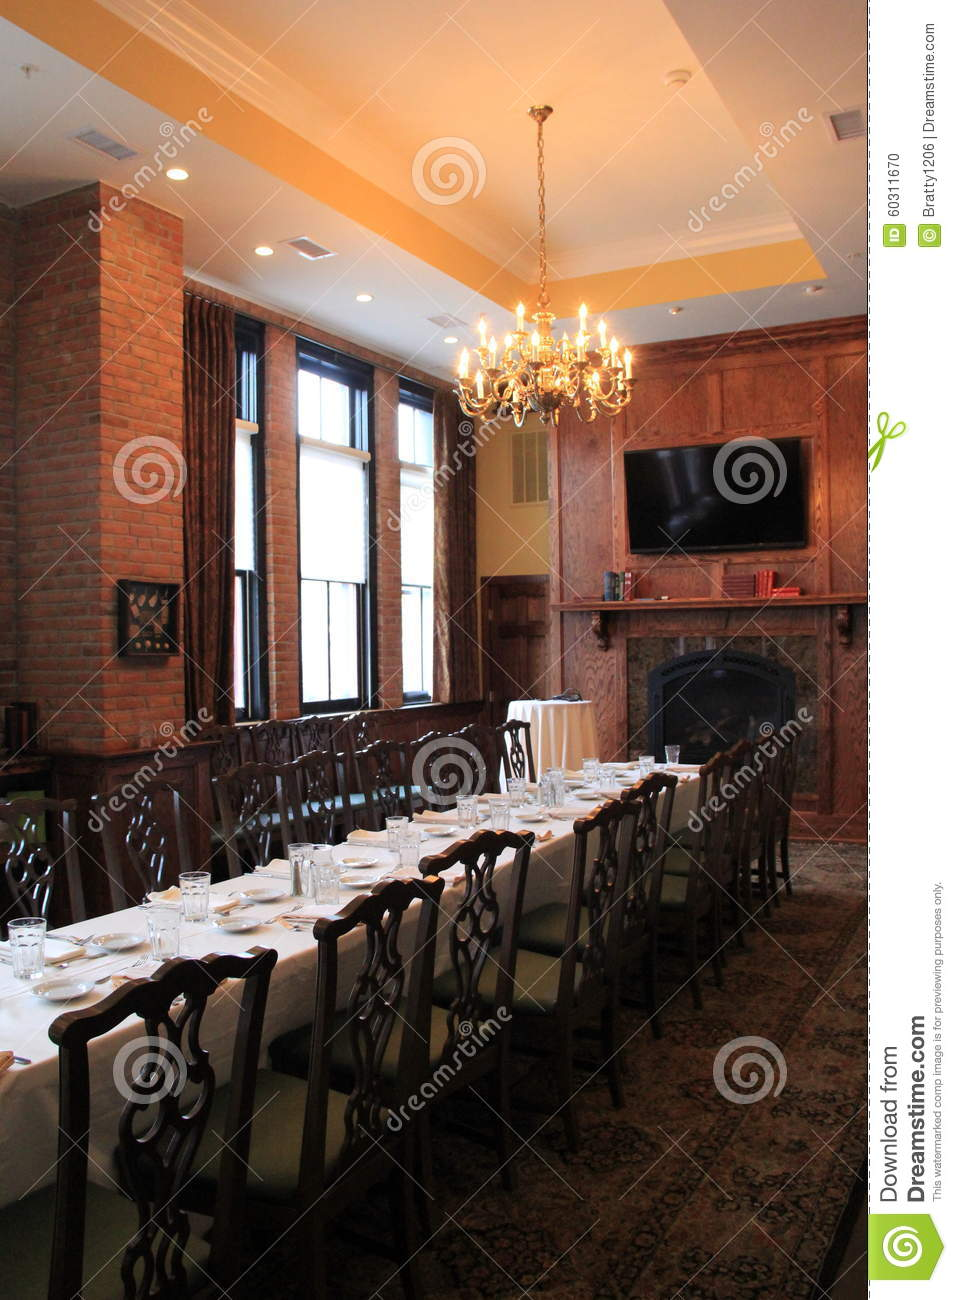 Long Dark Wood Table And Chairs In Dining Room Set For Party Harvey S Restaurant BarSaratoga2015